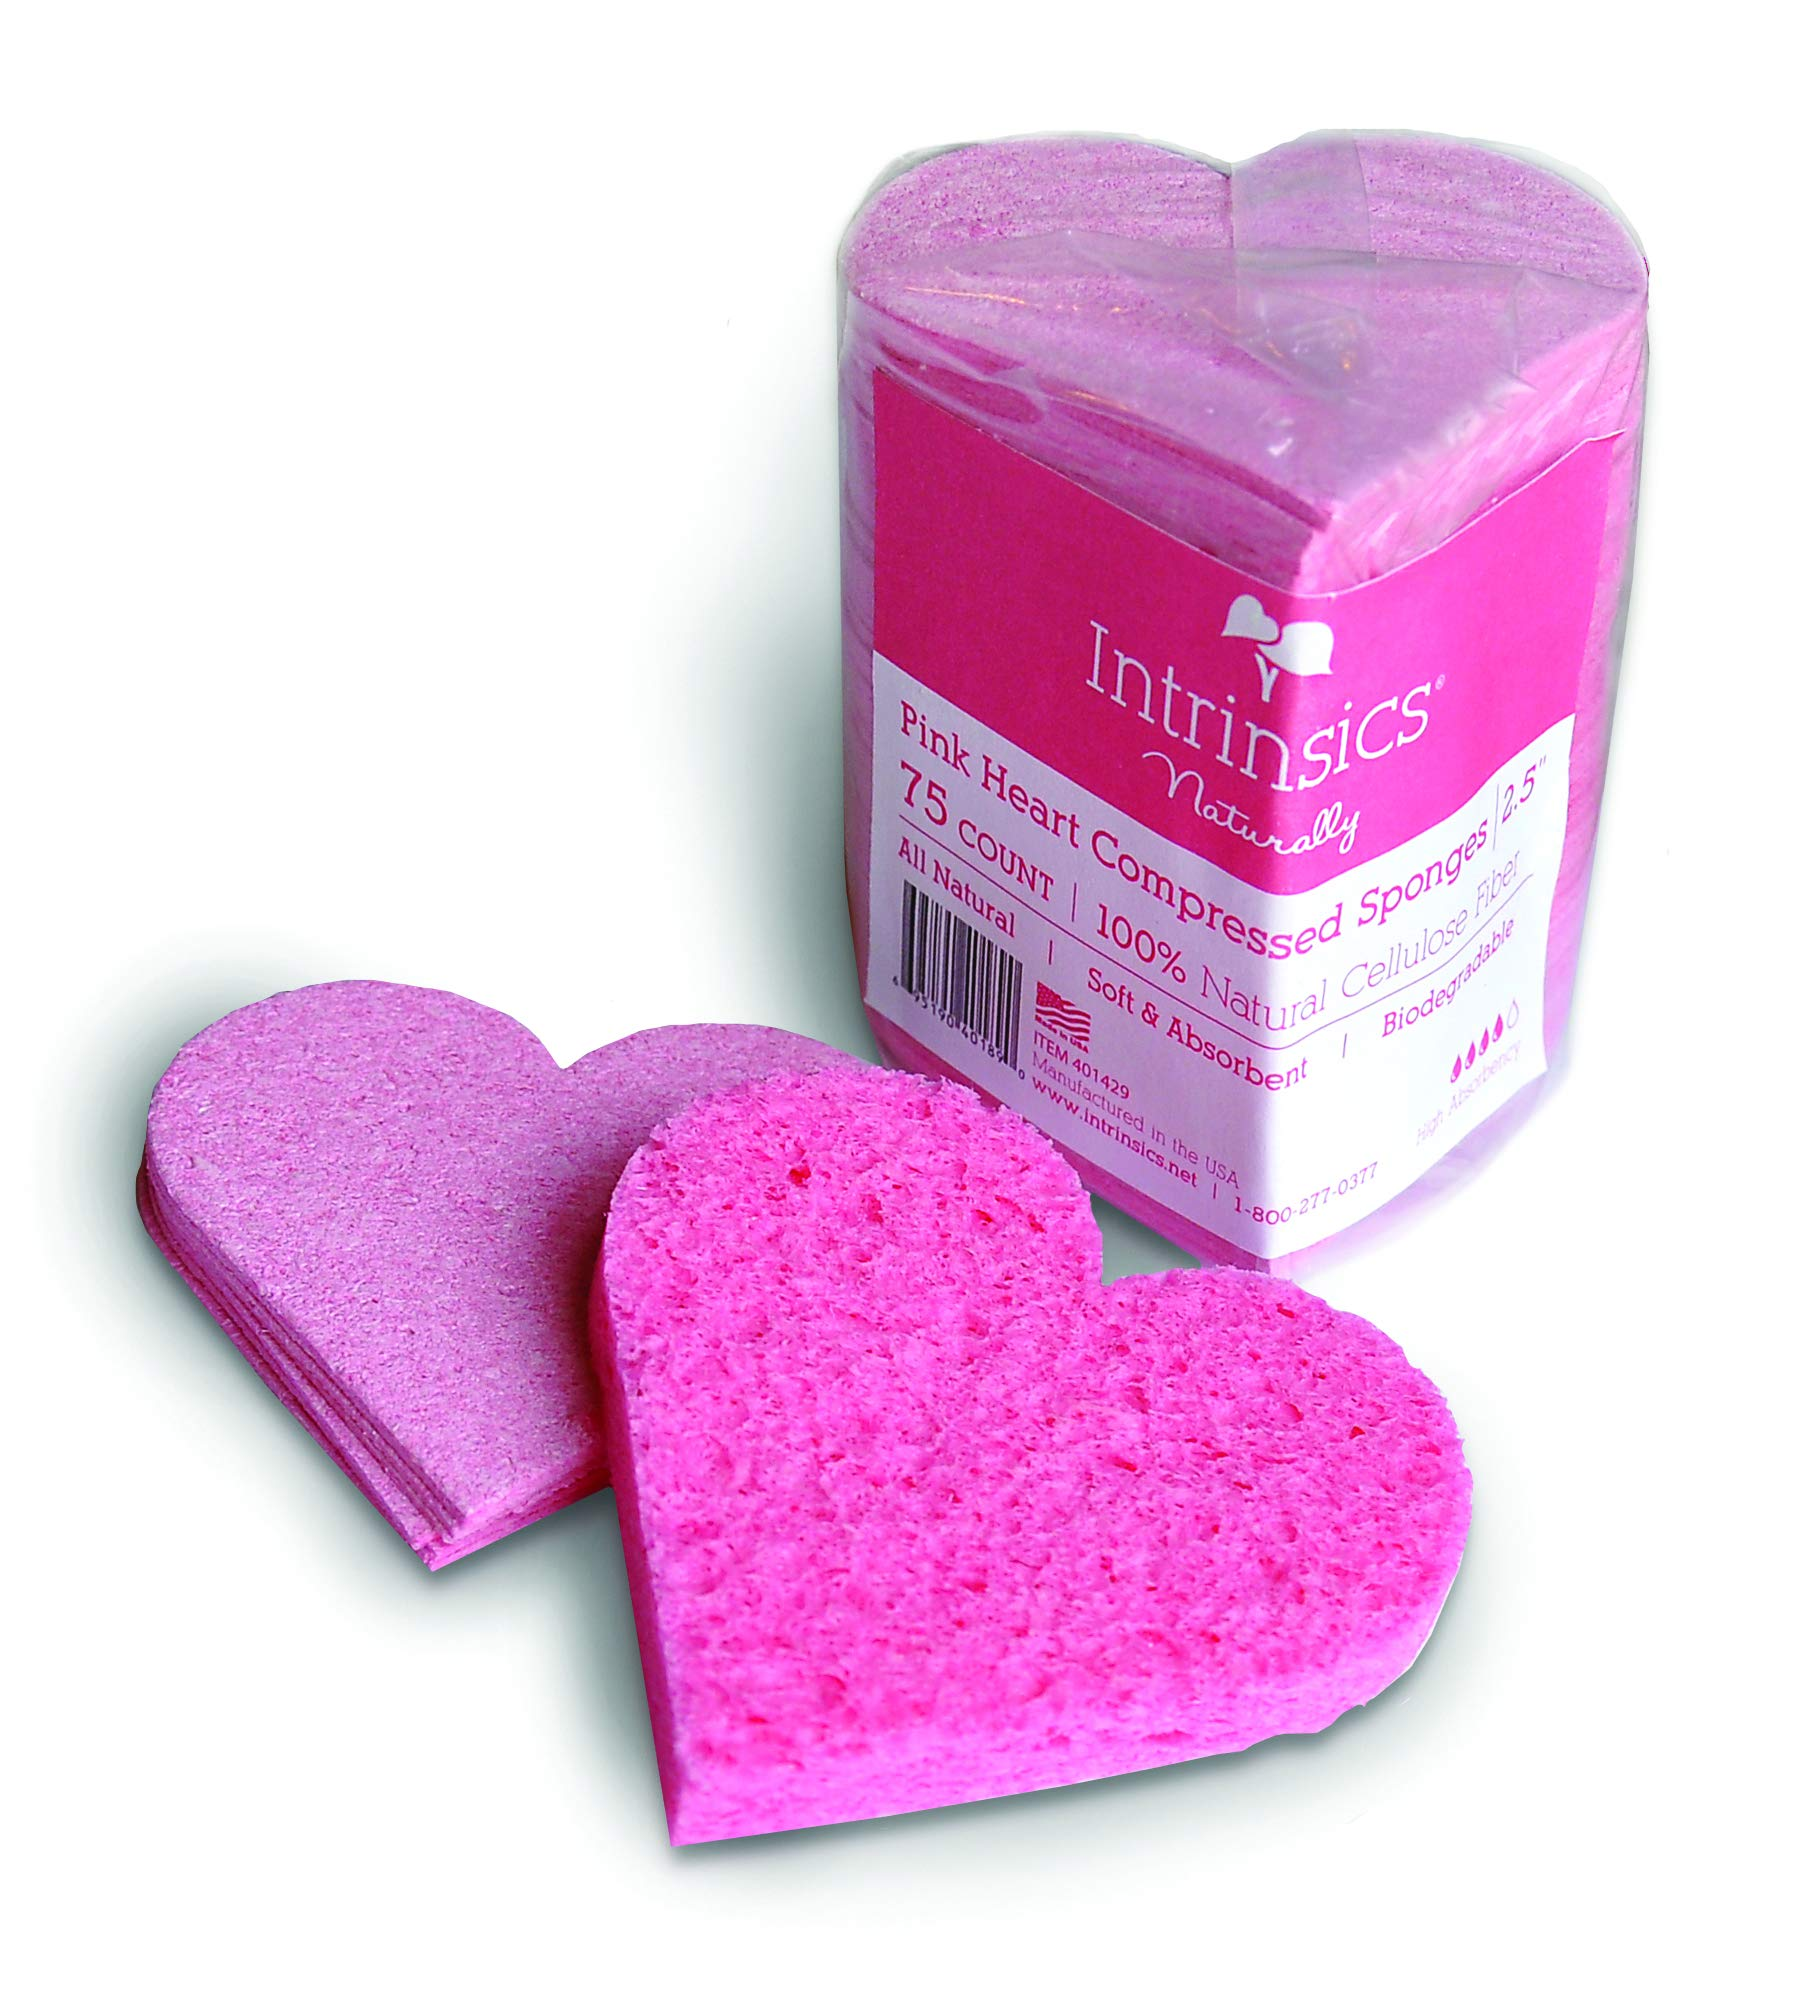 Intrinsics Pink Heart Compressed Cellulose Sponges For Facial Cleansing - 2.5'', 75 Count